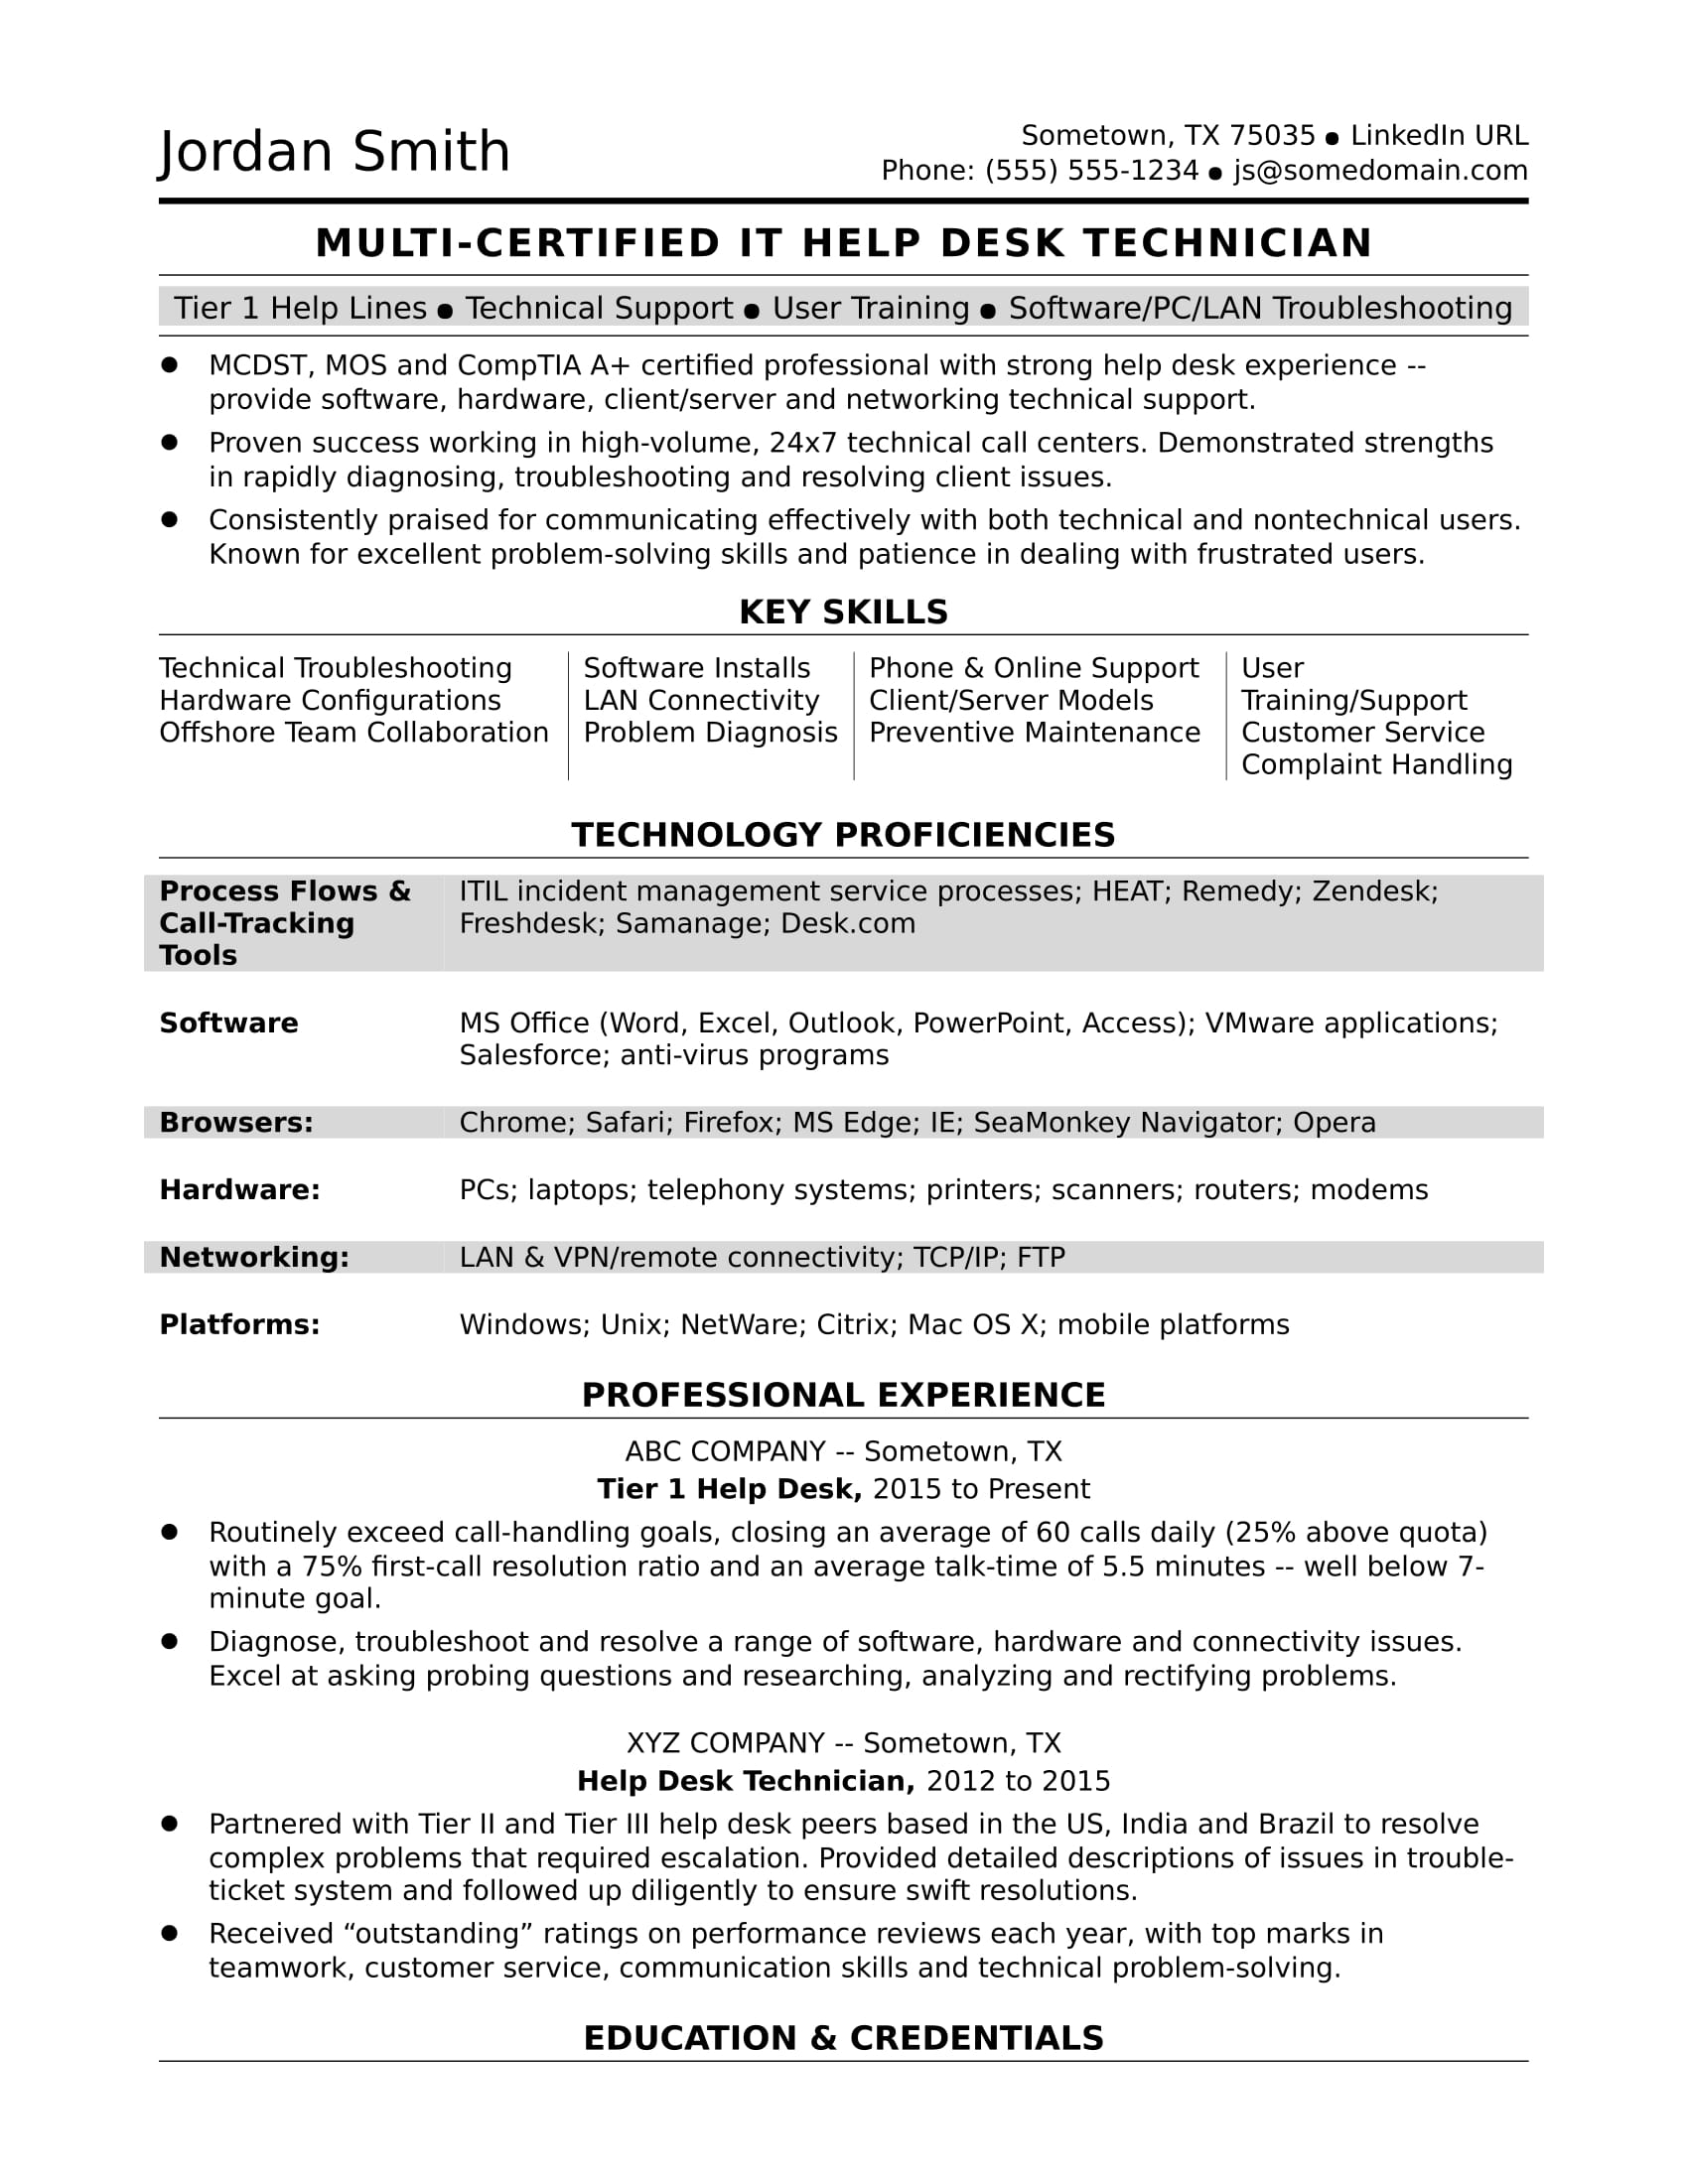 The Resume Place Complaints Sample Resume For A Midlevel It Help Desk Professional Monster